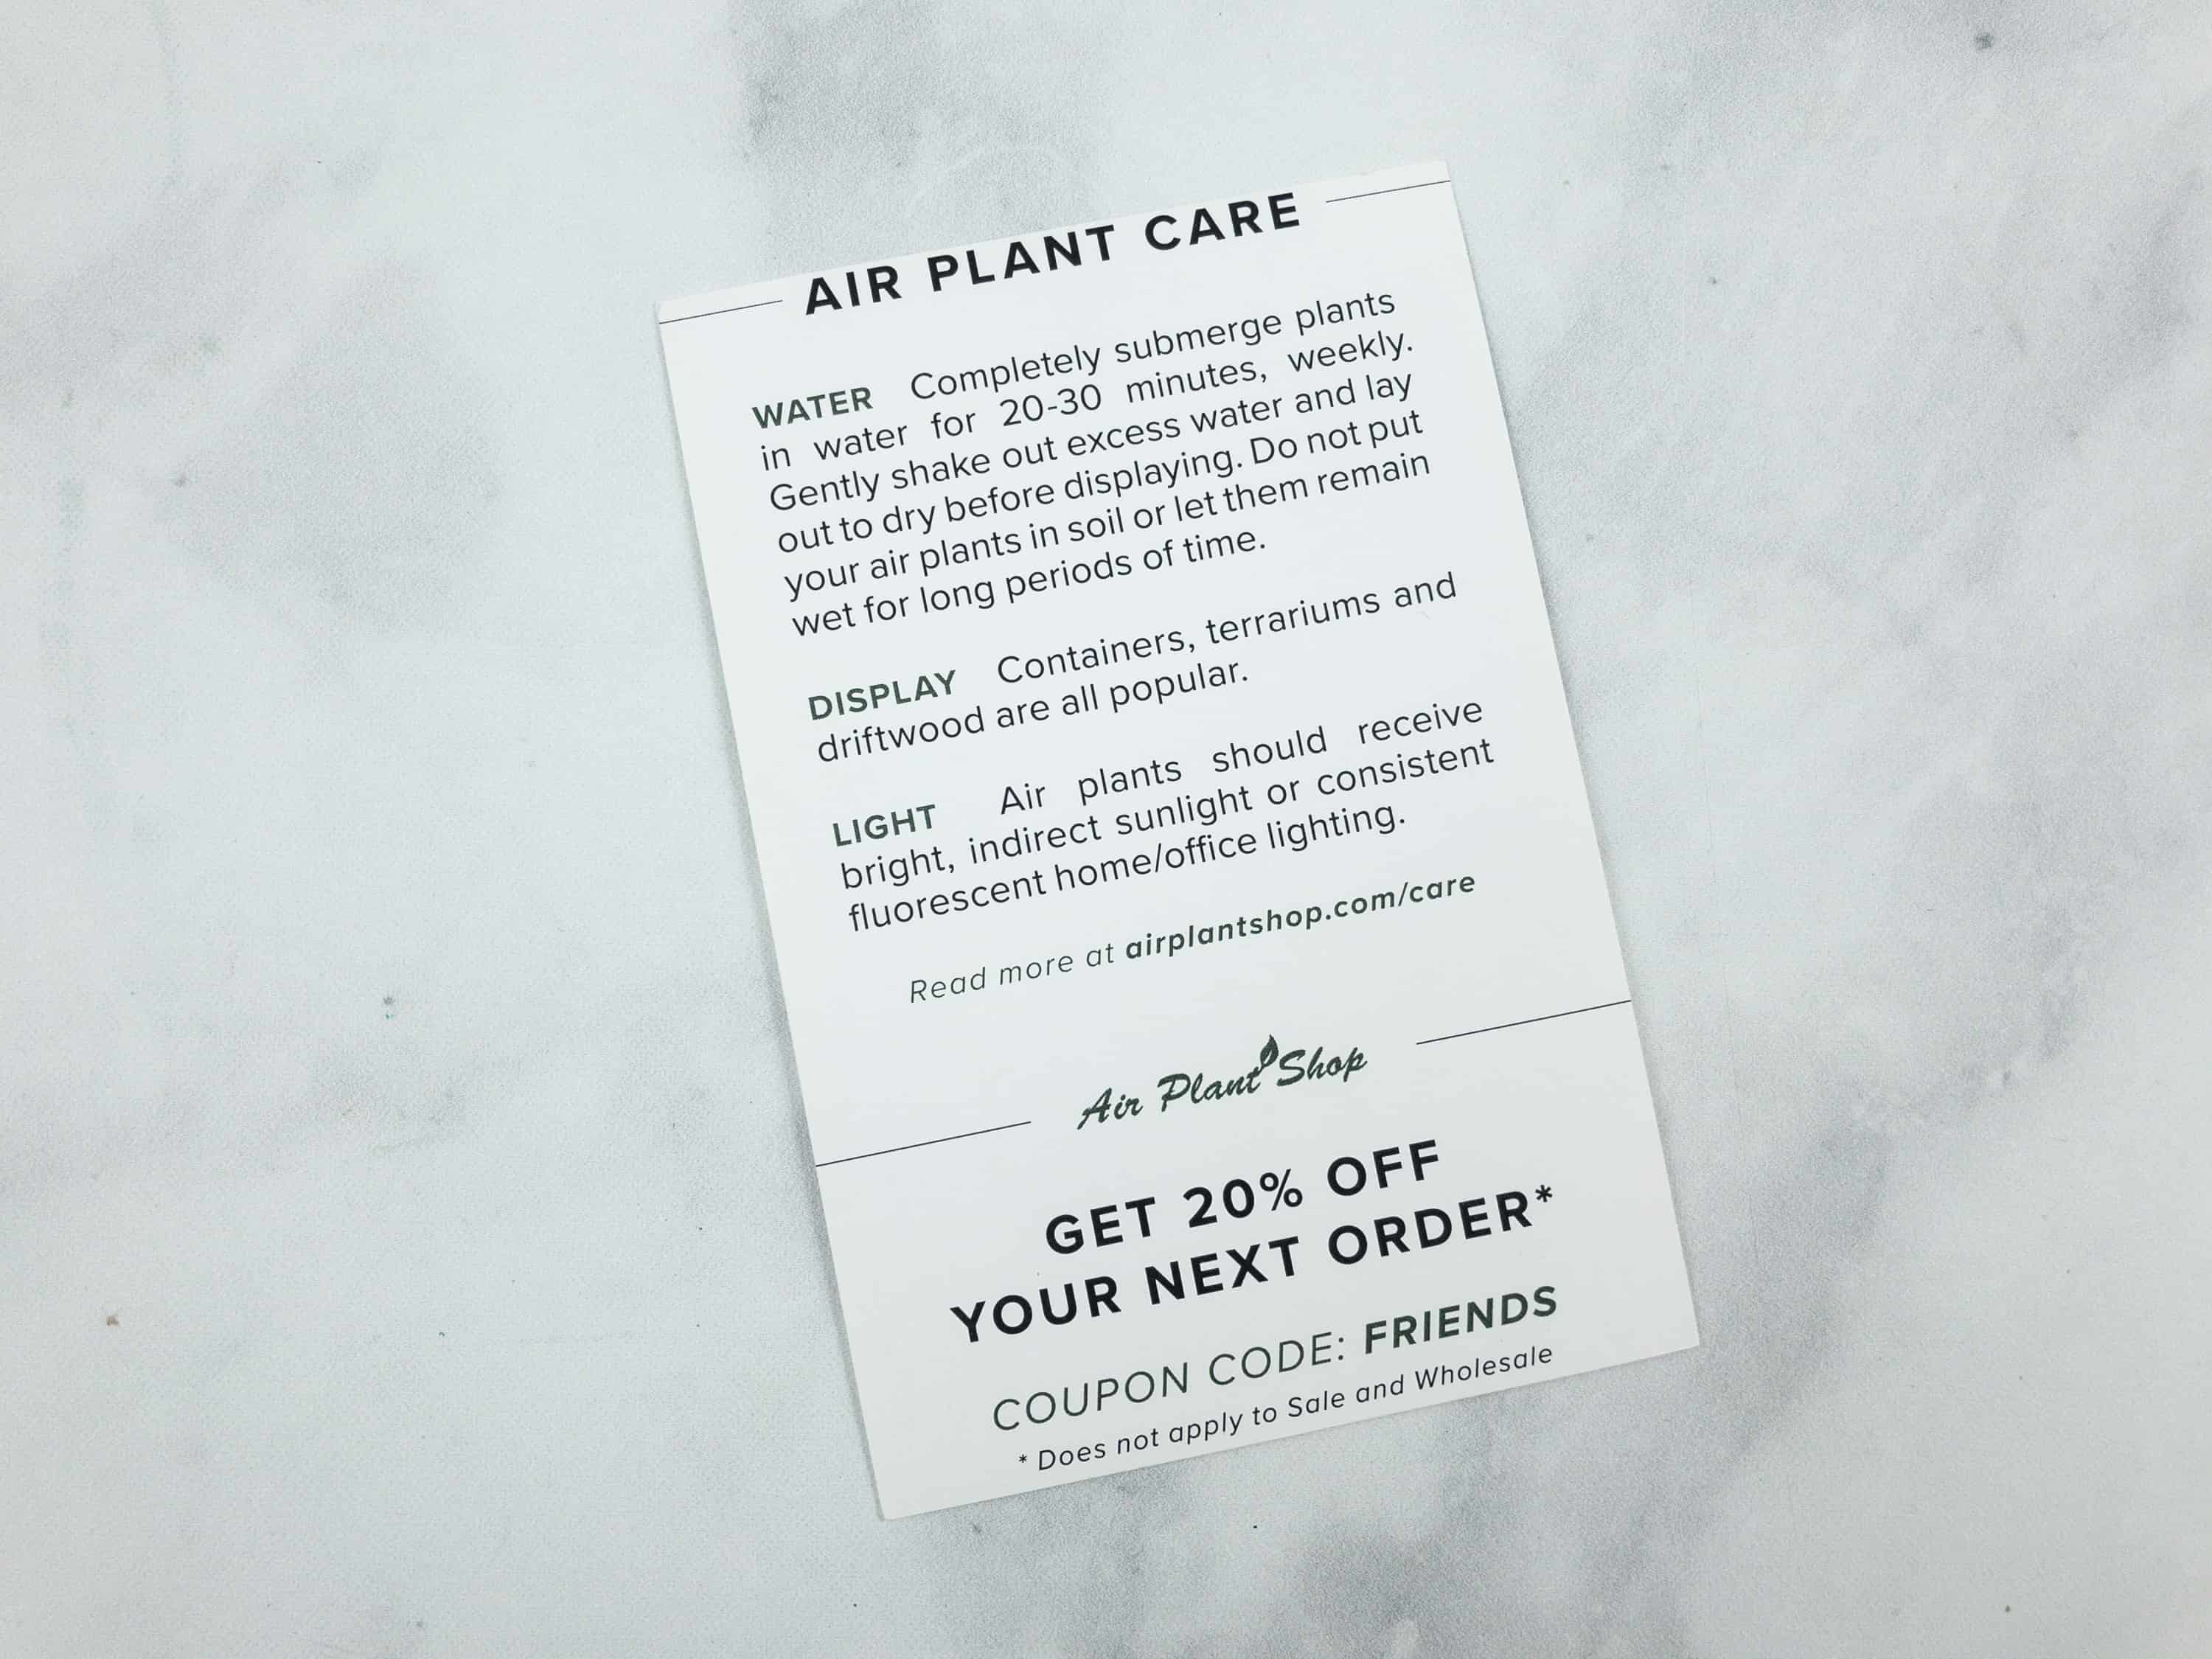 Care Tips For Your New Plant Are Printed At The Back Of Card There S Also A 20 Off Coupon You Can Use On Their Website